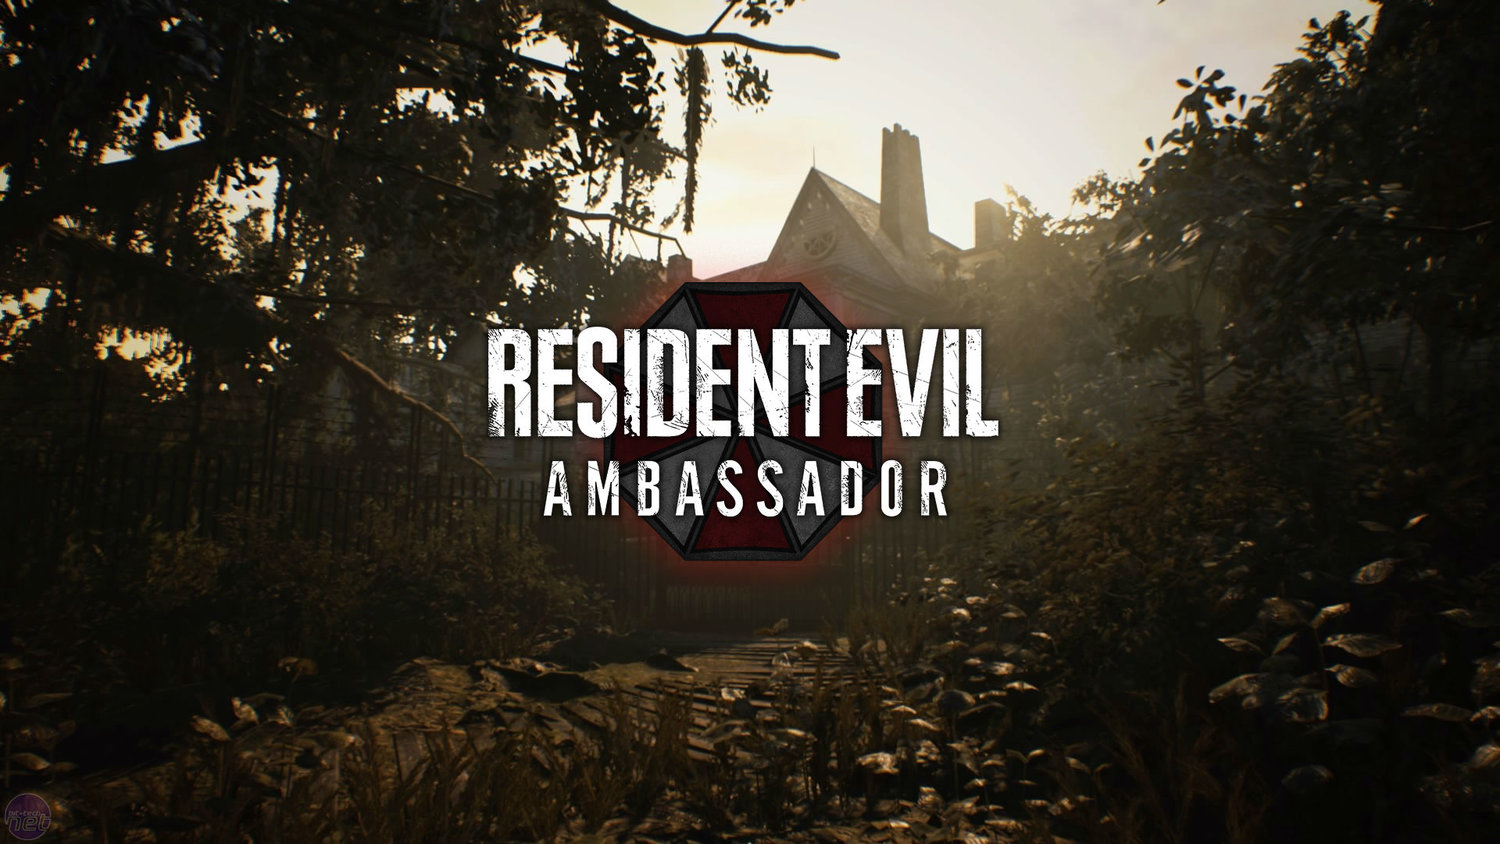 RESIDENT EVIL Ambassadors Treated to a Survey and Developer